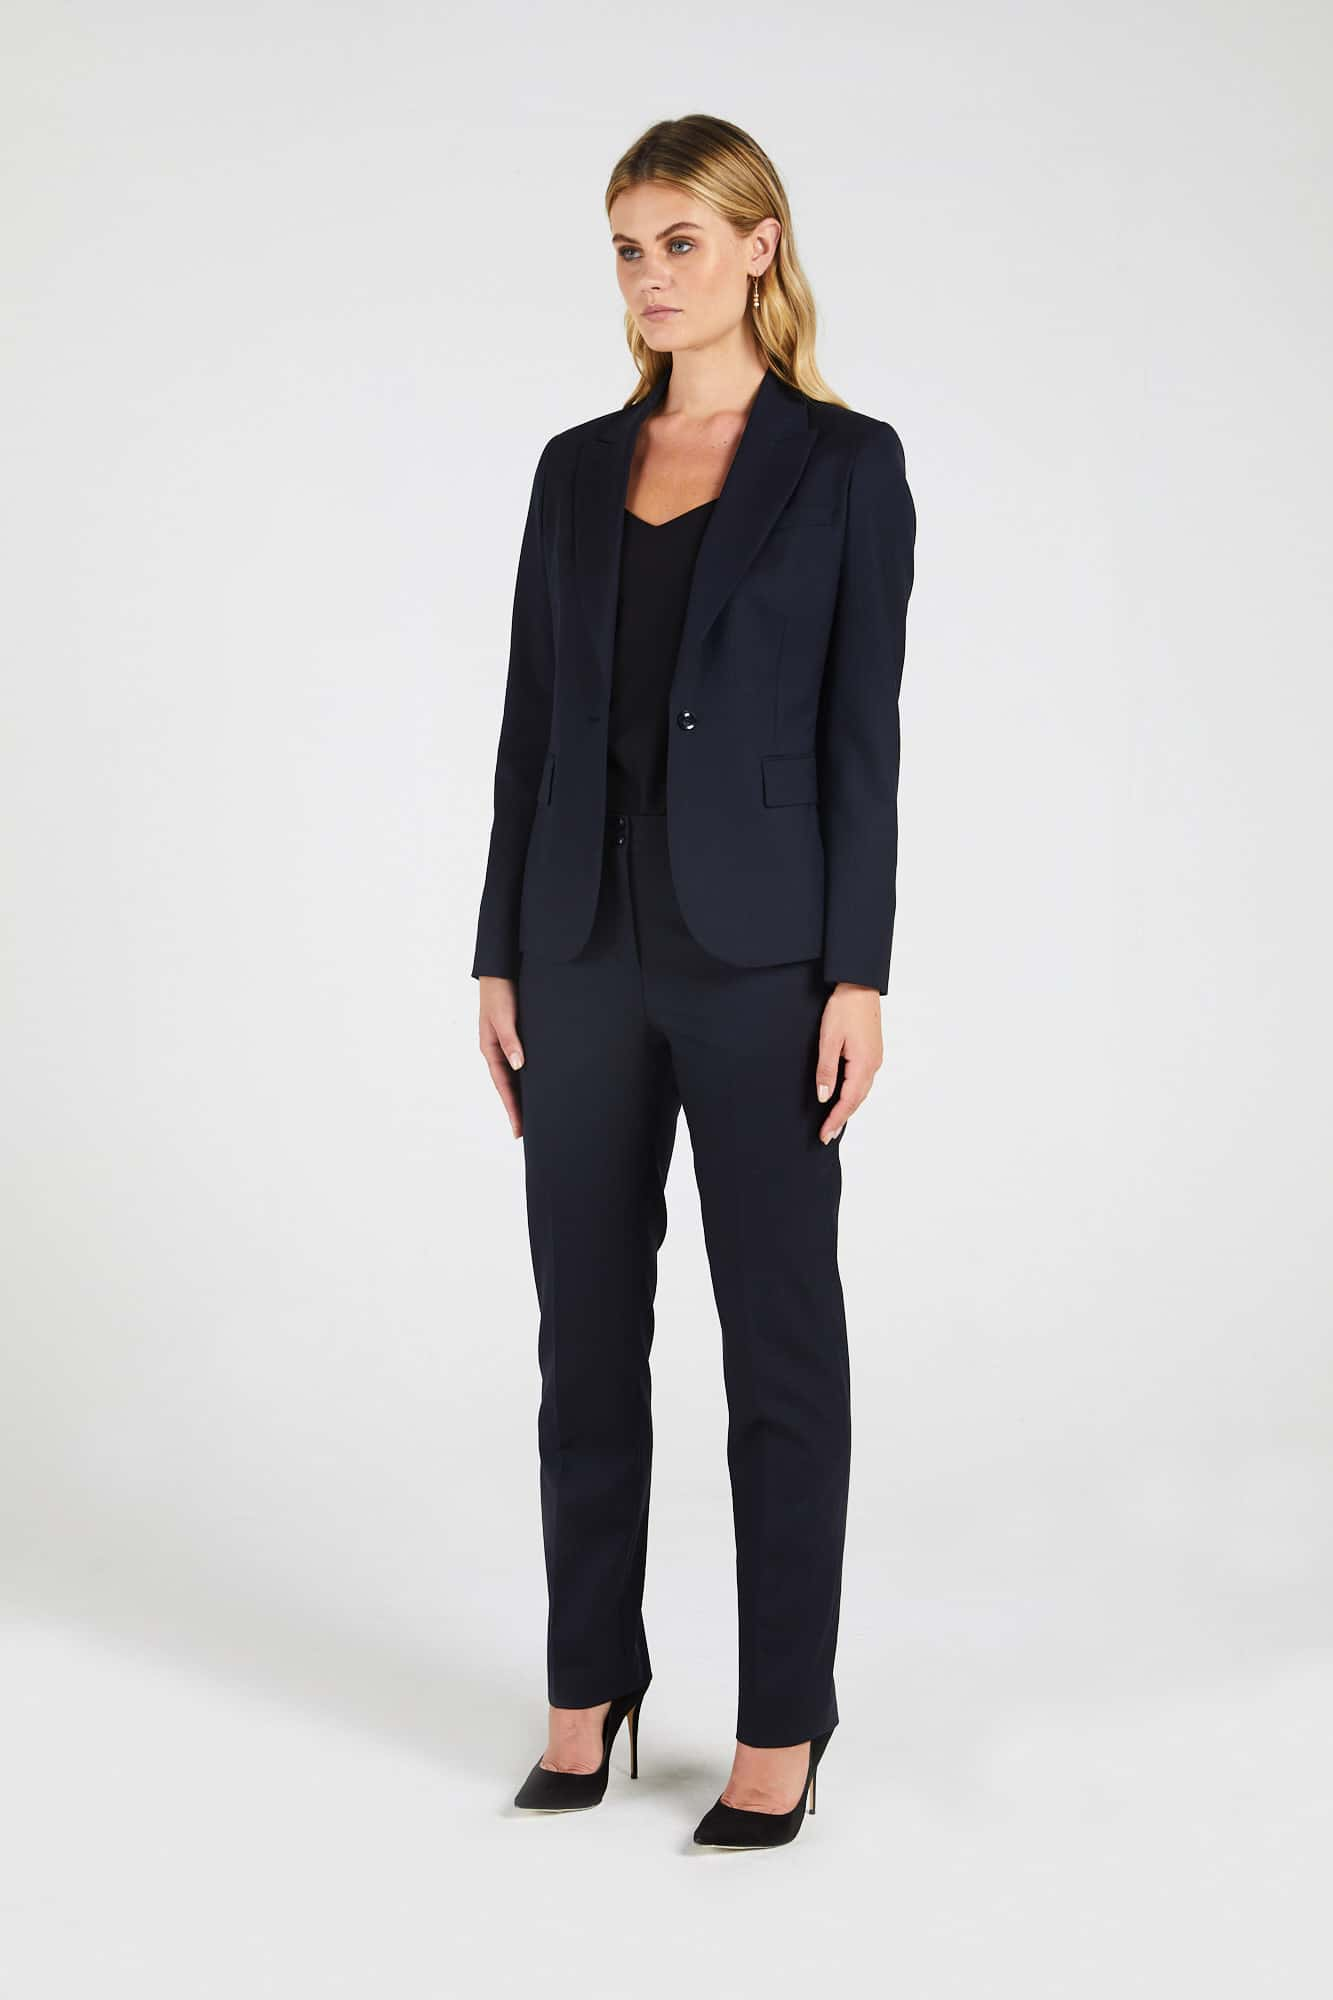 InStitchu Collection The Pattie Dark Navy Herringbone Jacket